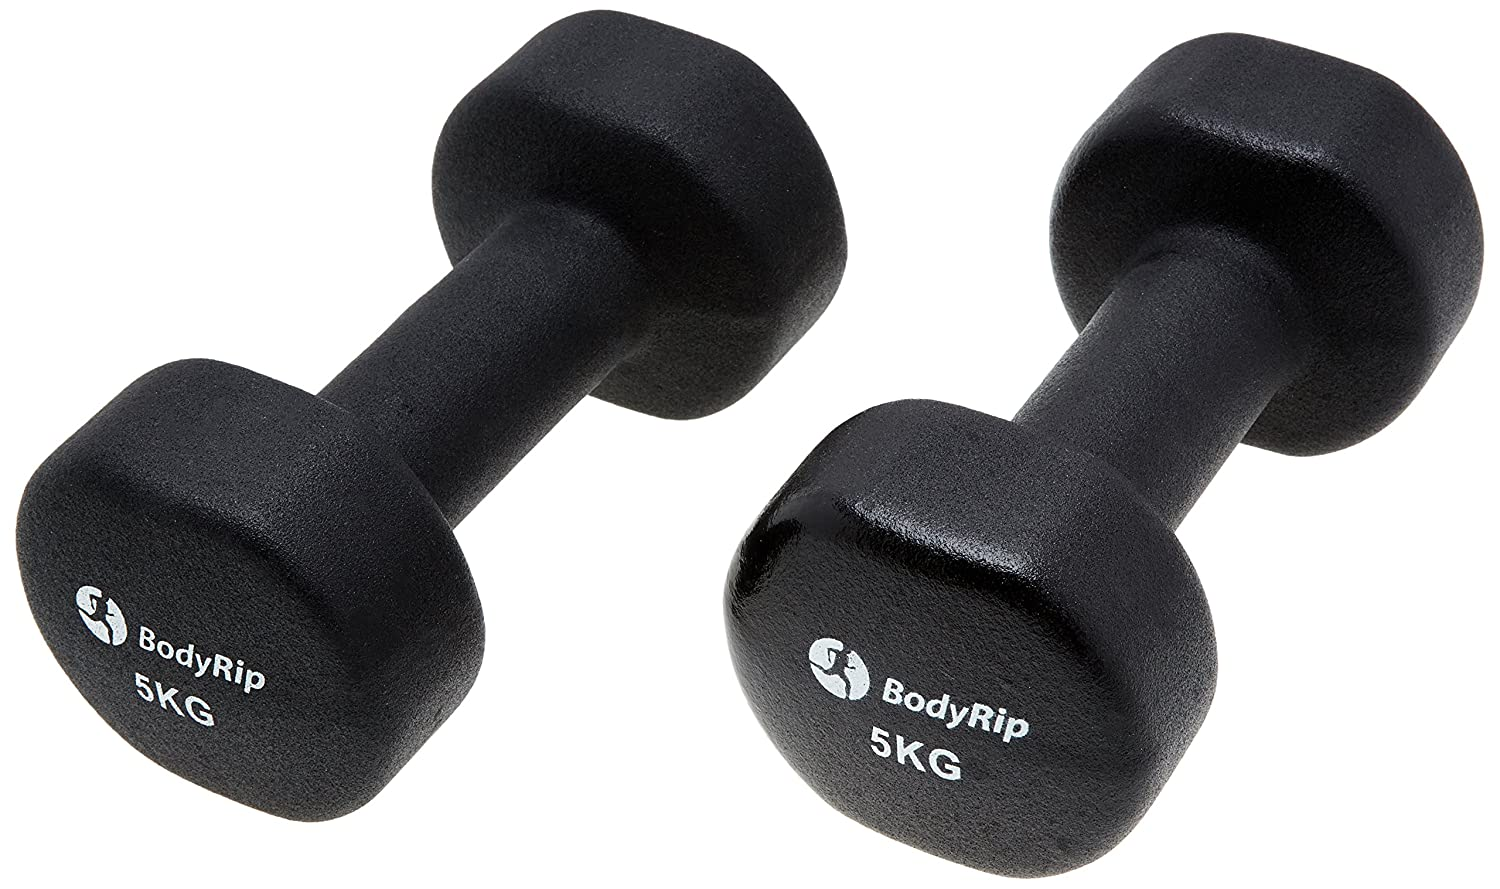 9a22c5d5b1e BodyRip 2 x 5kg Fitness Neoprene New Hand Weight Dumbbells For Home Gym  Training  Amazon.co.uk  Sports   Outdoors